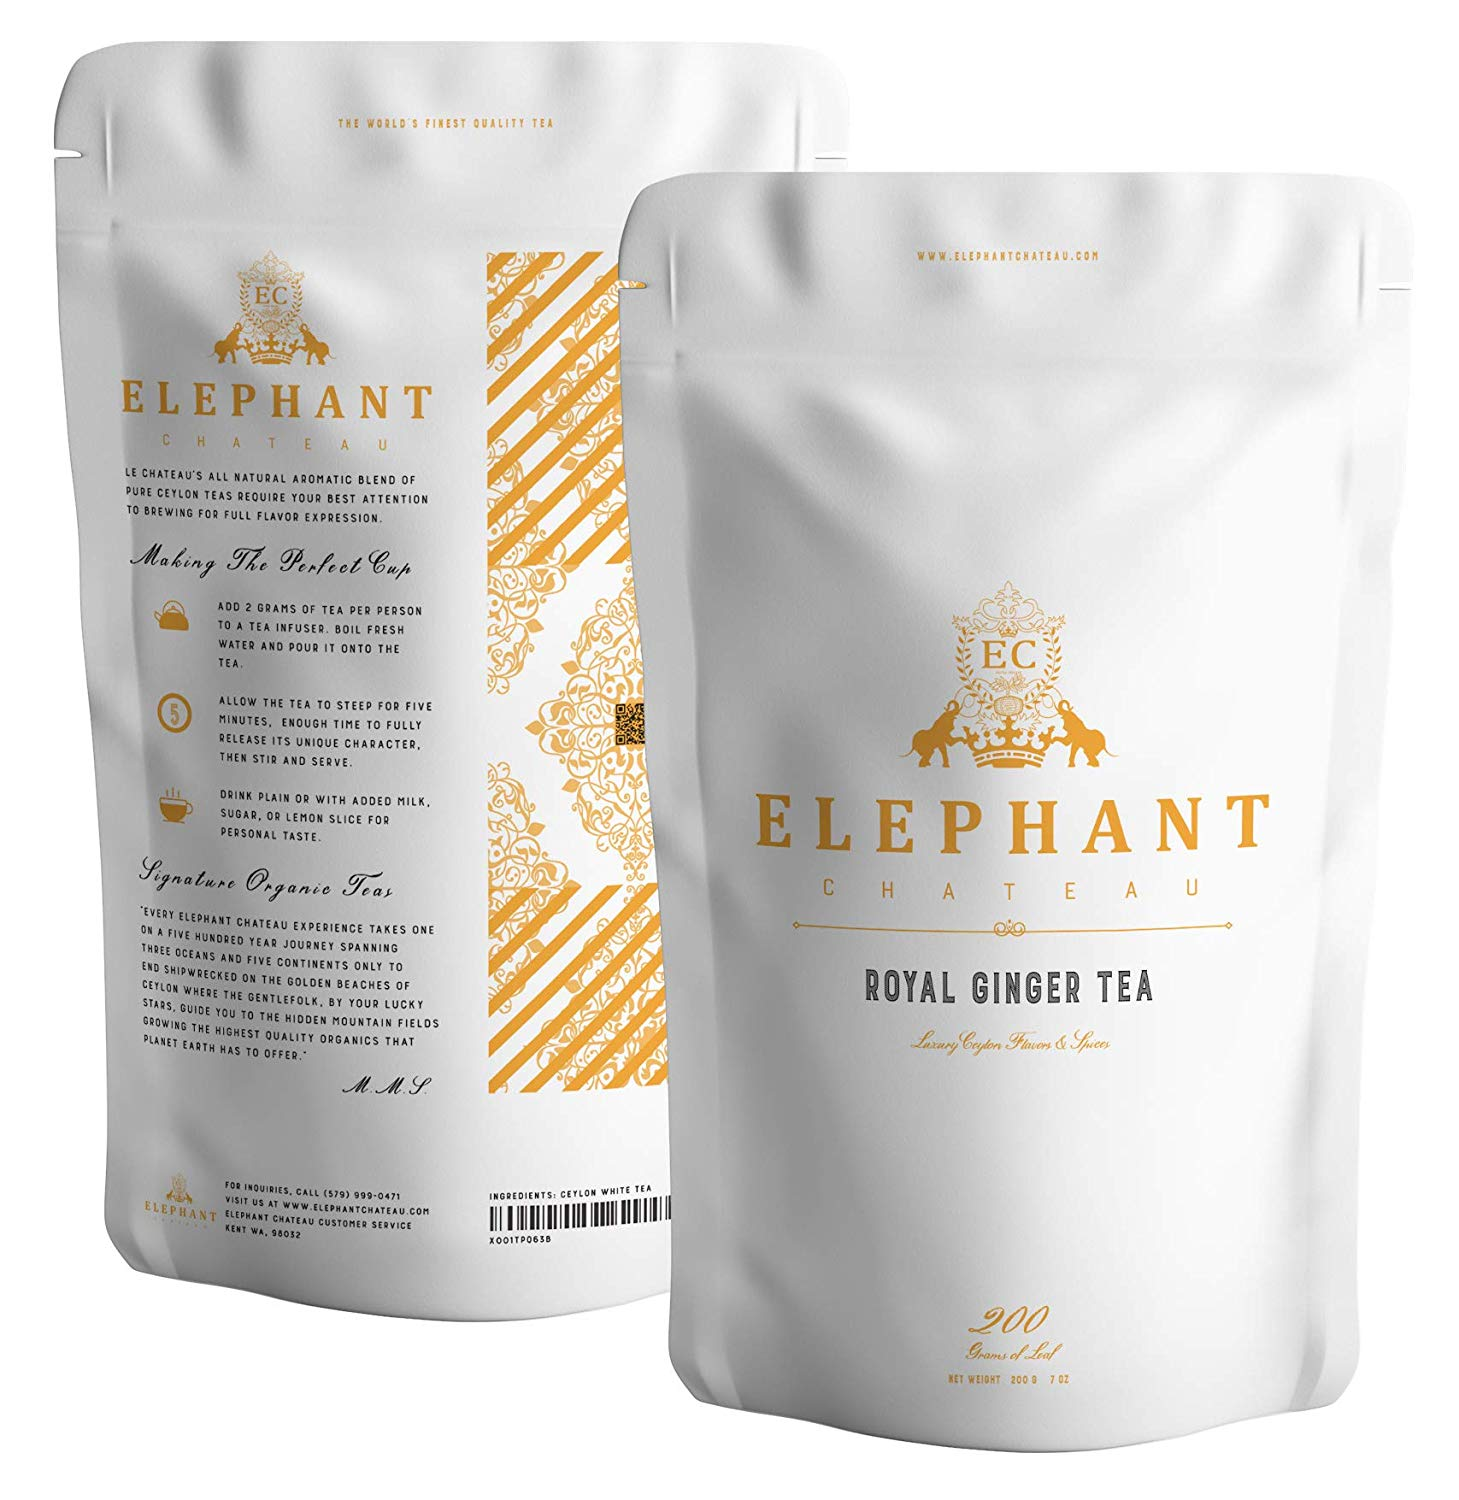 Royal Ginger Tea (High Grade Ceylon Ginger) | 50 Pyramid Sachets | Organic Certified | Elephant Chateau | No Artificial Flavors